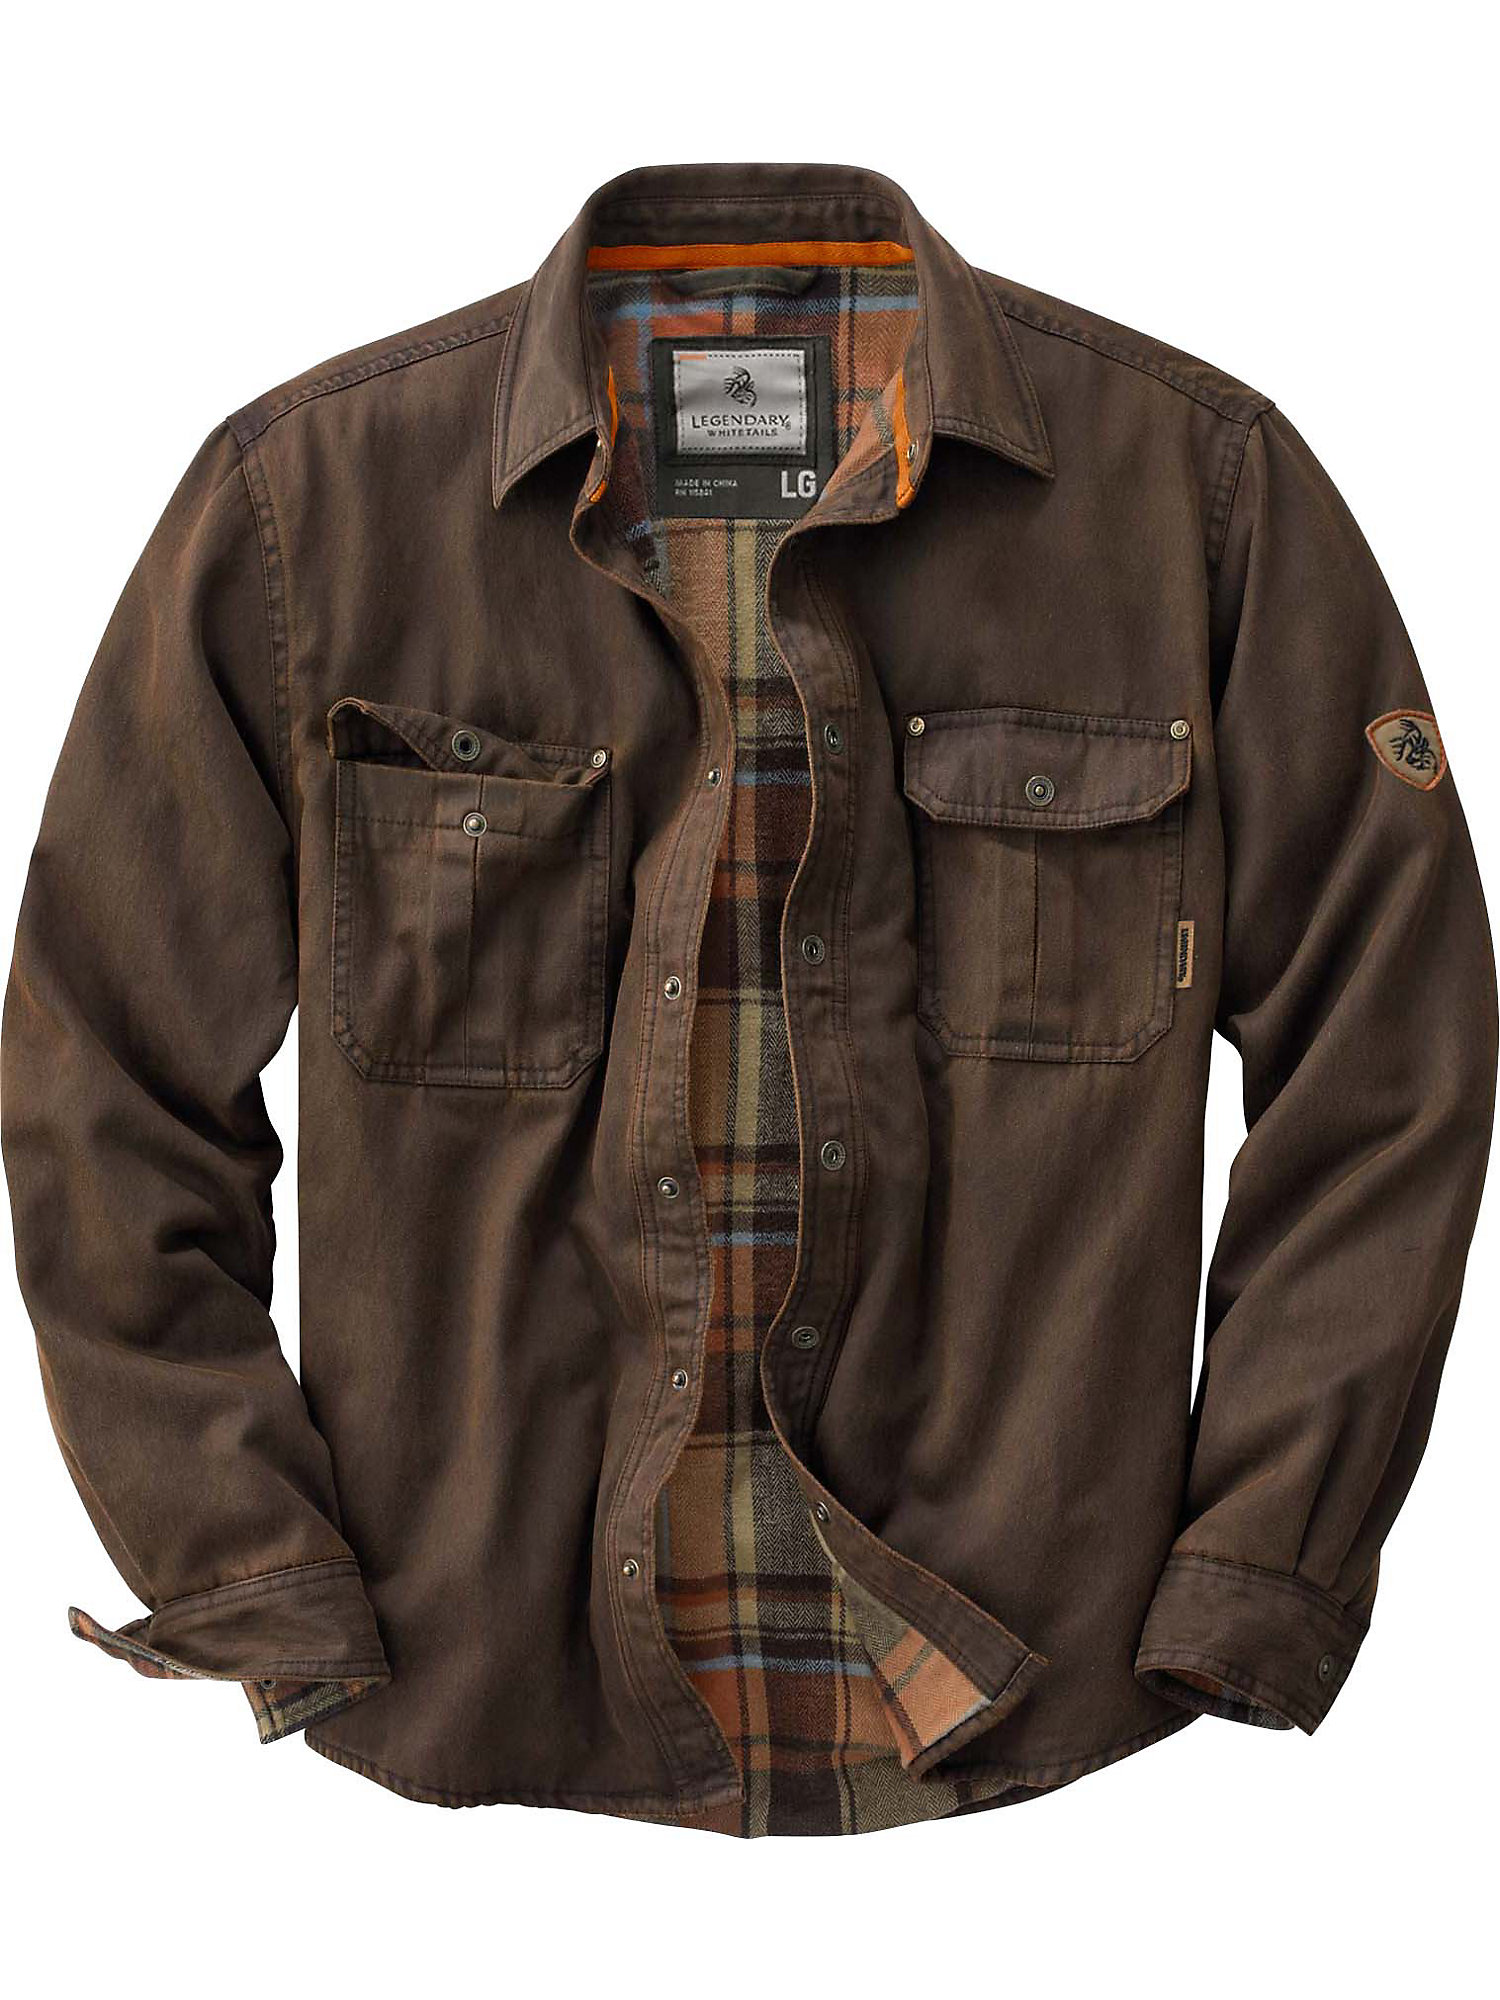 men rug today shoes r open overstock product shipping free rugged leather mens excelled bottom jacket s o clothing